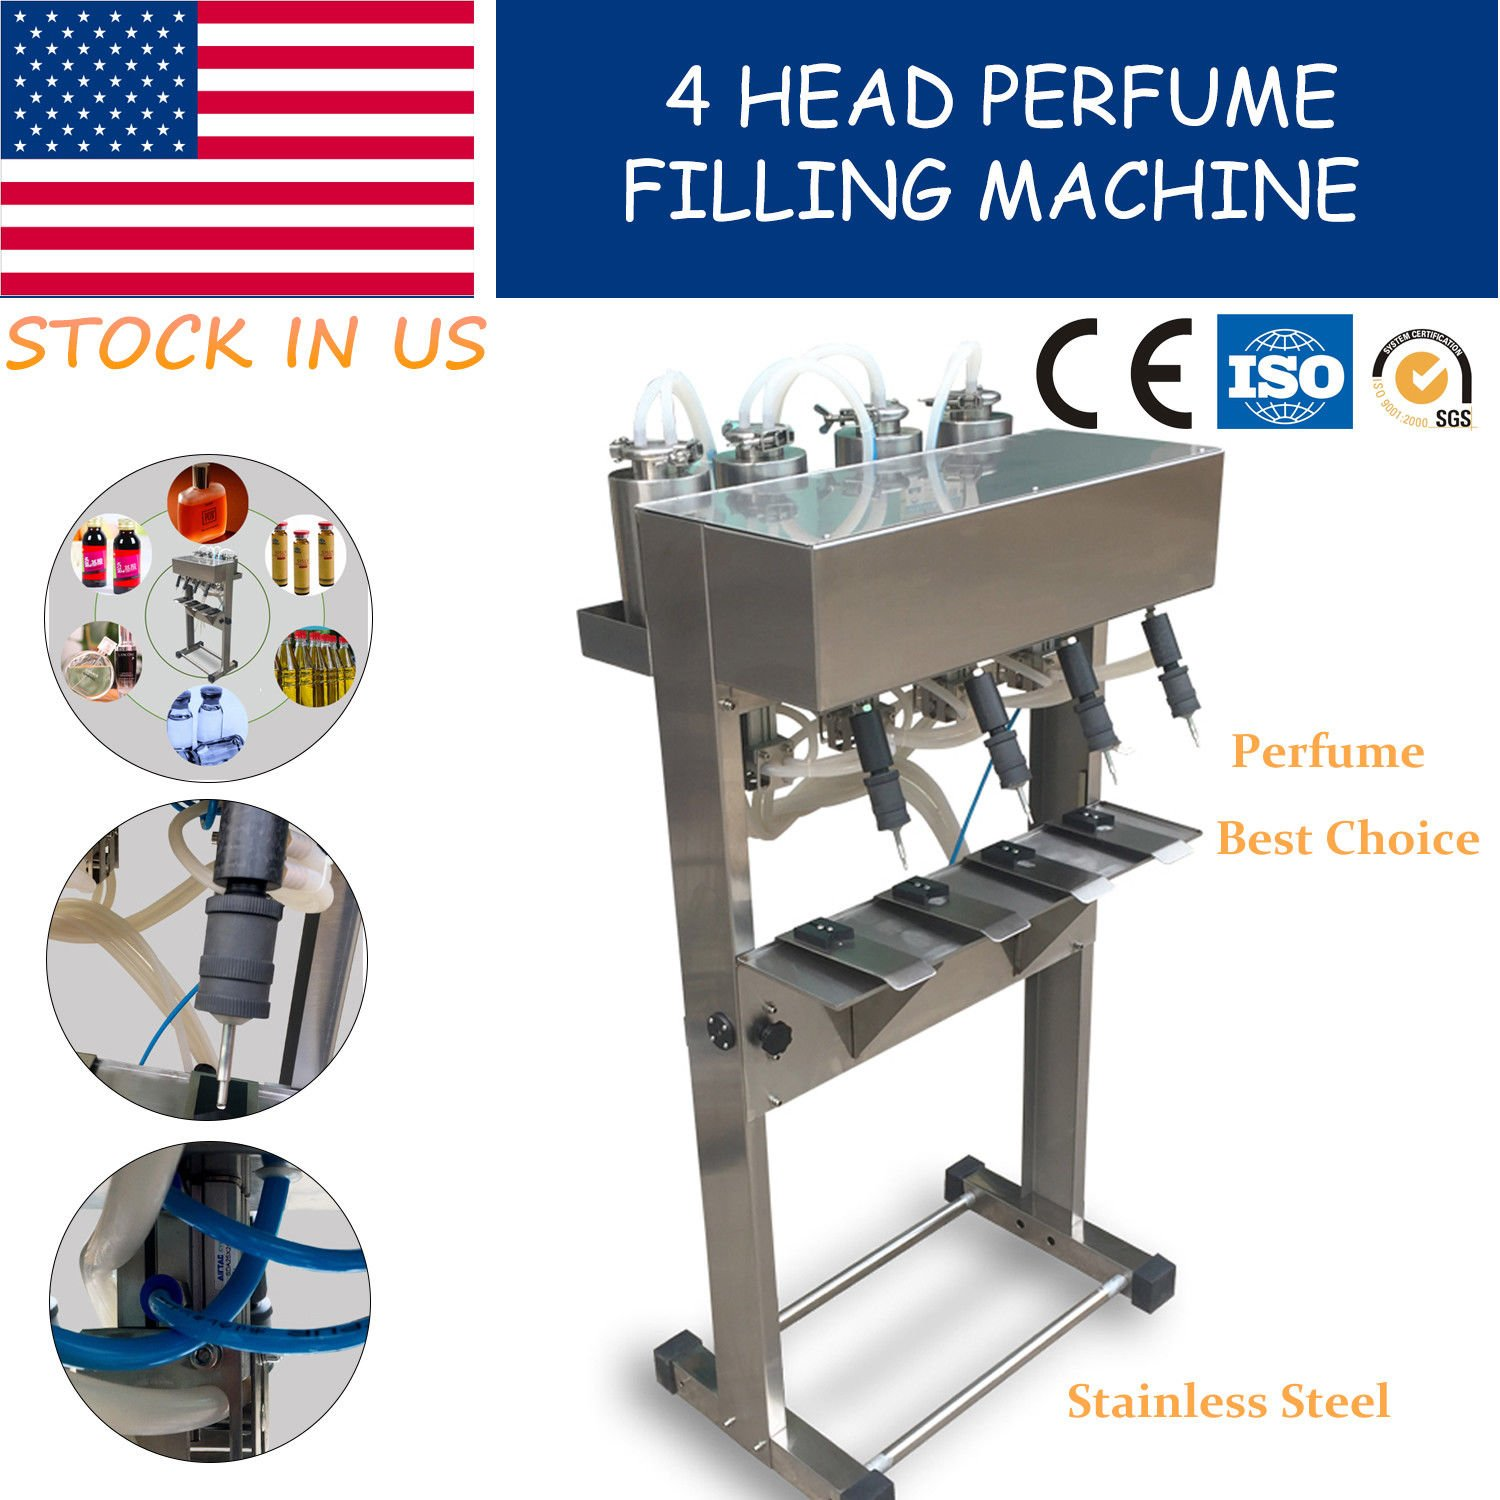 YT-4 head perfume filling machine,pneumatic vacuum liquid filler USA Stock by Youlian